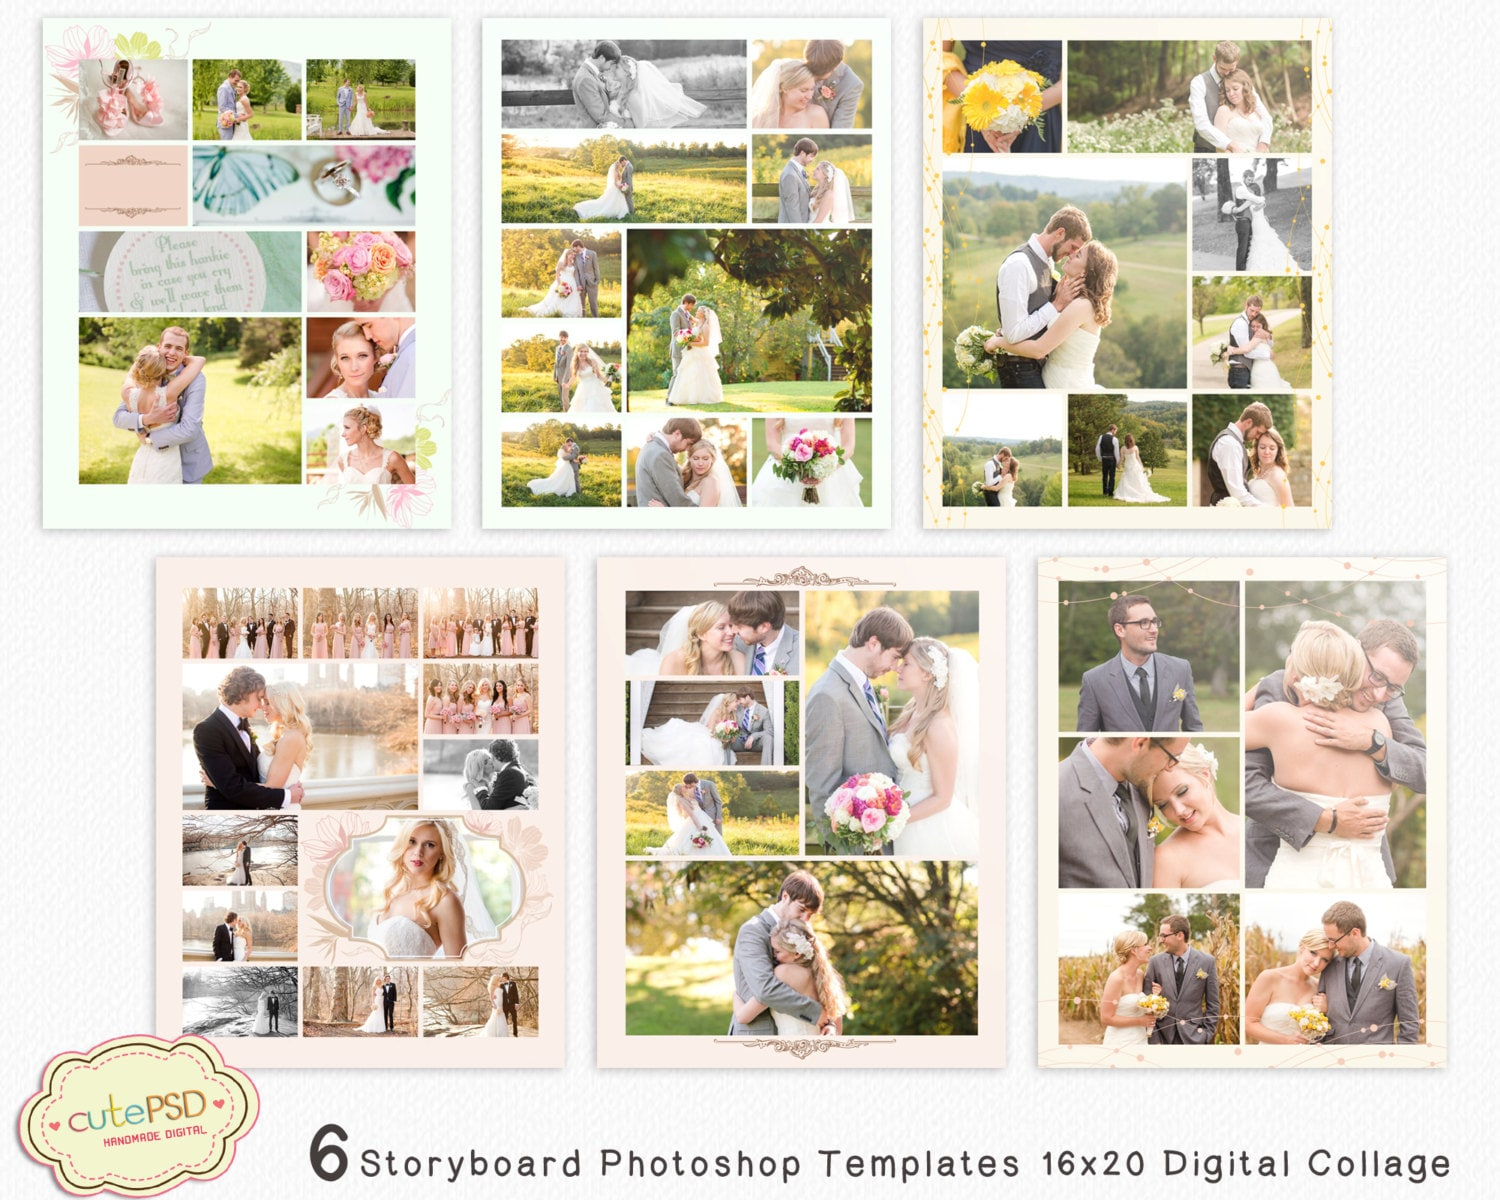 Foto Collage Templates Photoshop Collage Vorlagen | Etsy